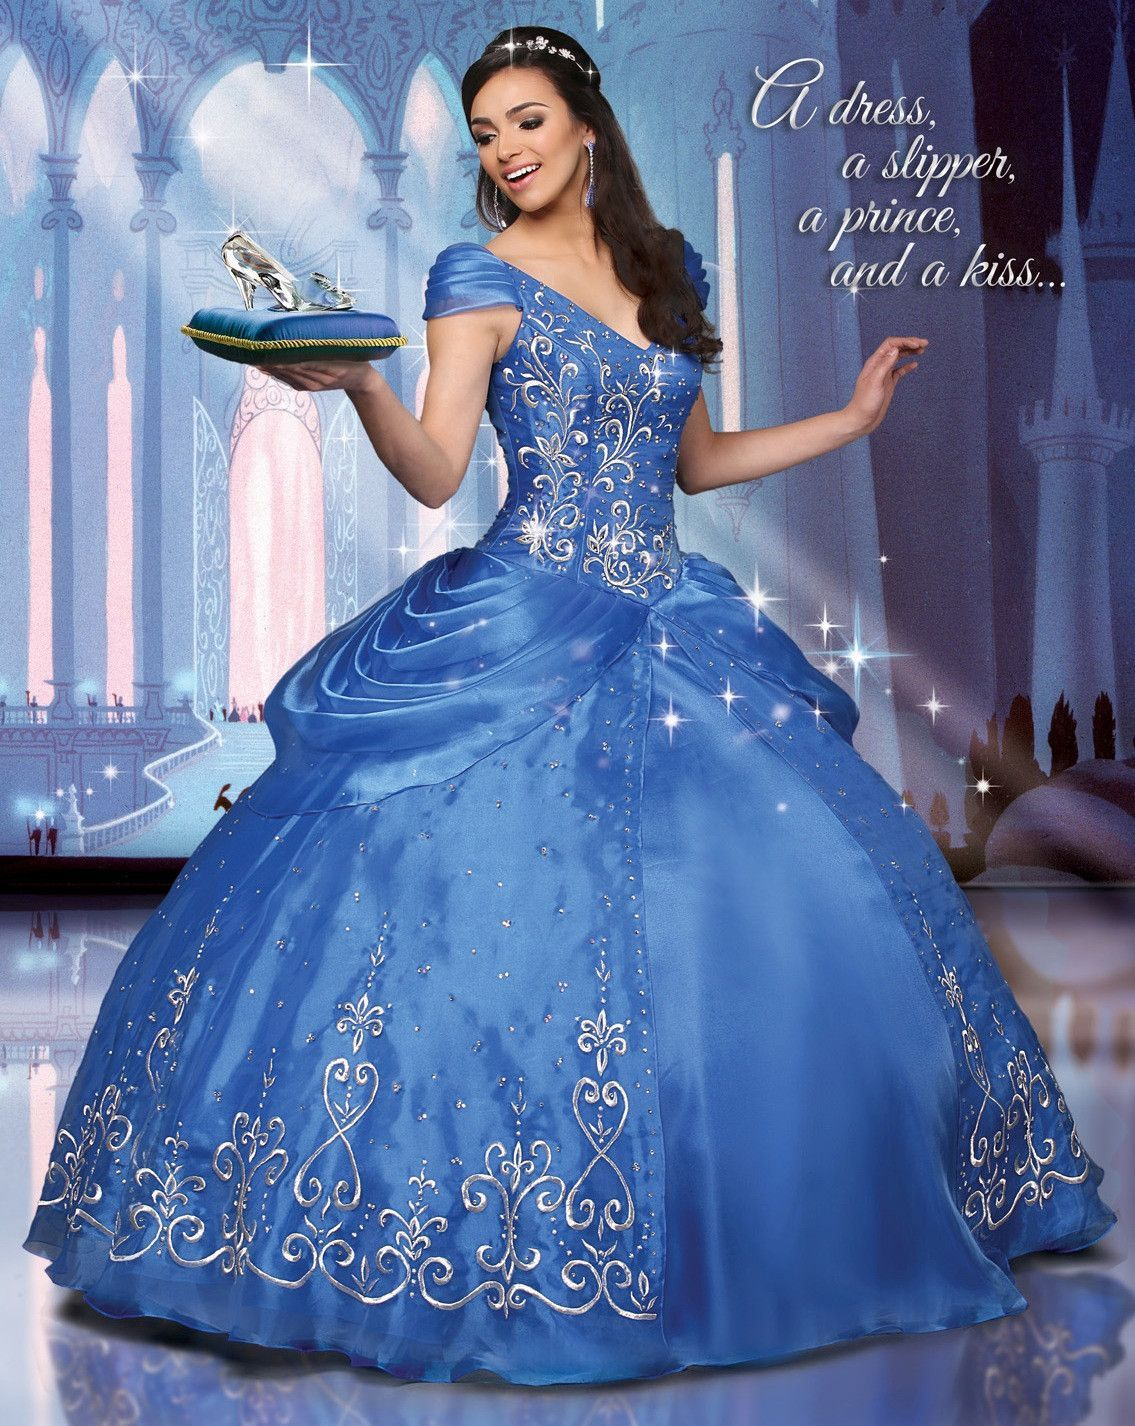 d9064ee5db0 Disney Royal Ball Quinceanera Dress Cinderella Style 41064 is made for  Sweet 15 girls who want to look like a beautiful Princess on her special  day.